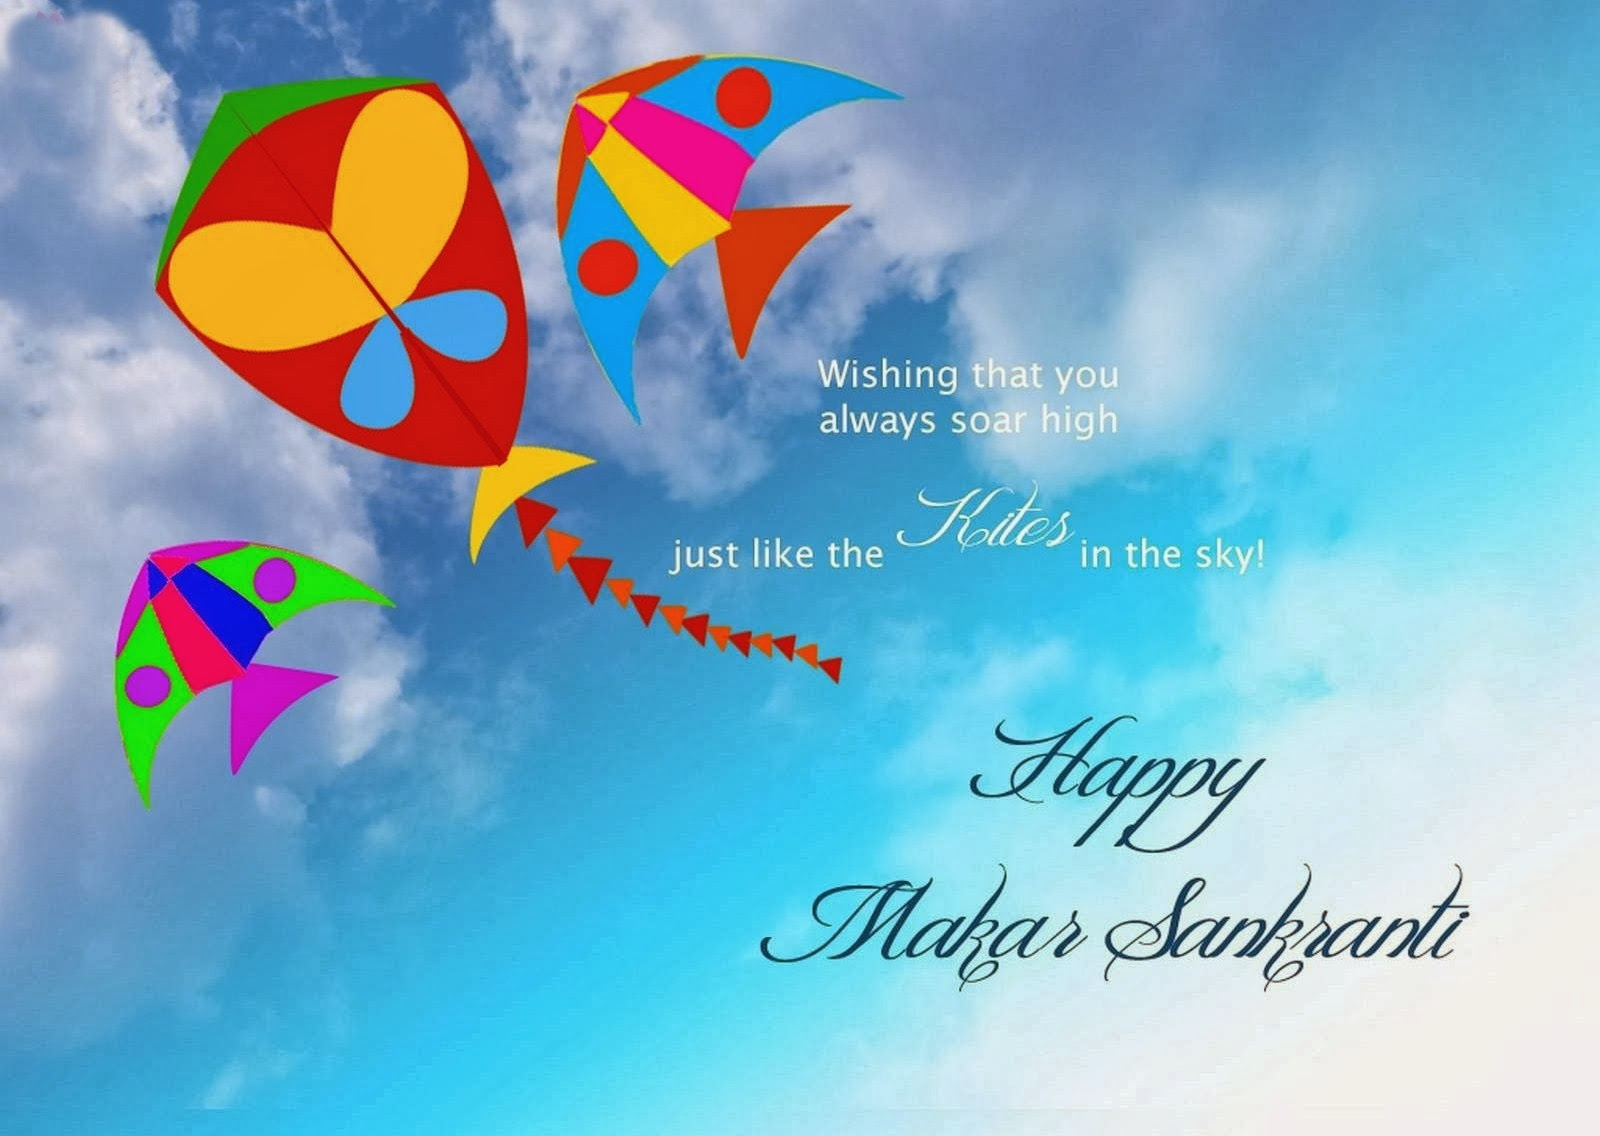 Happy makar sankranti wallpapers and wishes messages happiness style happy makar sankranti wallpapers and wishes messages m4hsunfo